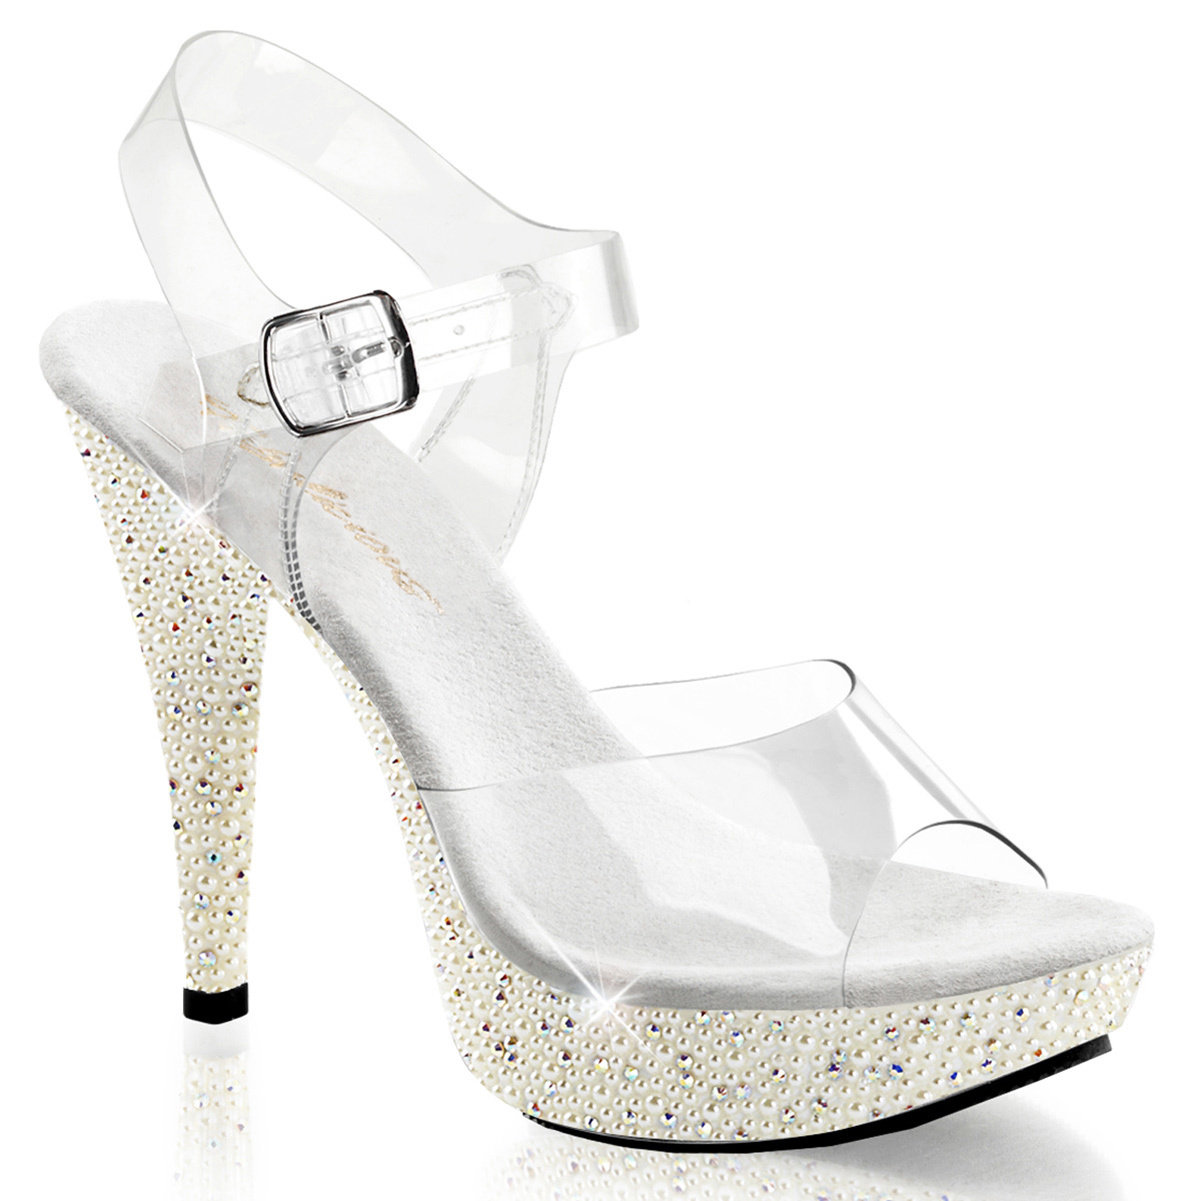 Womens Stunning Sandals White Faux Pearl Bridal Sandals Stunning Shoes with 5'' Platform Heels 3efbd6